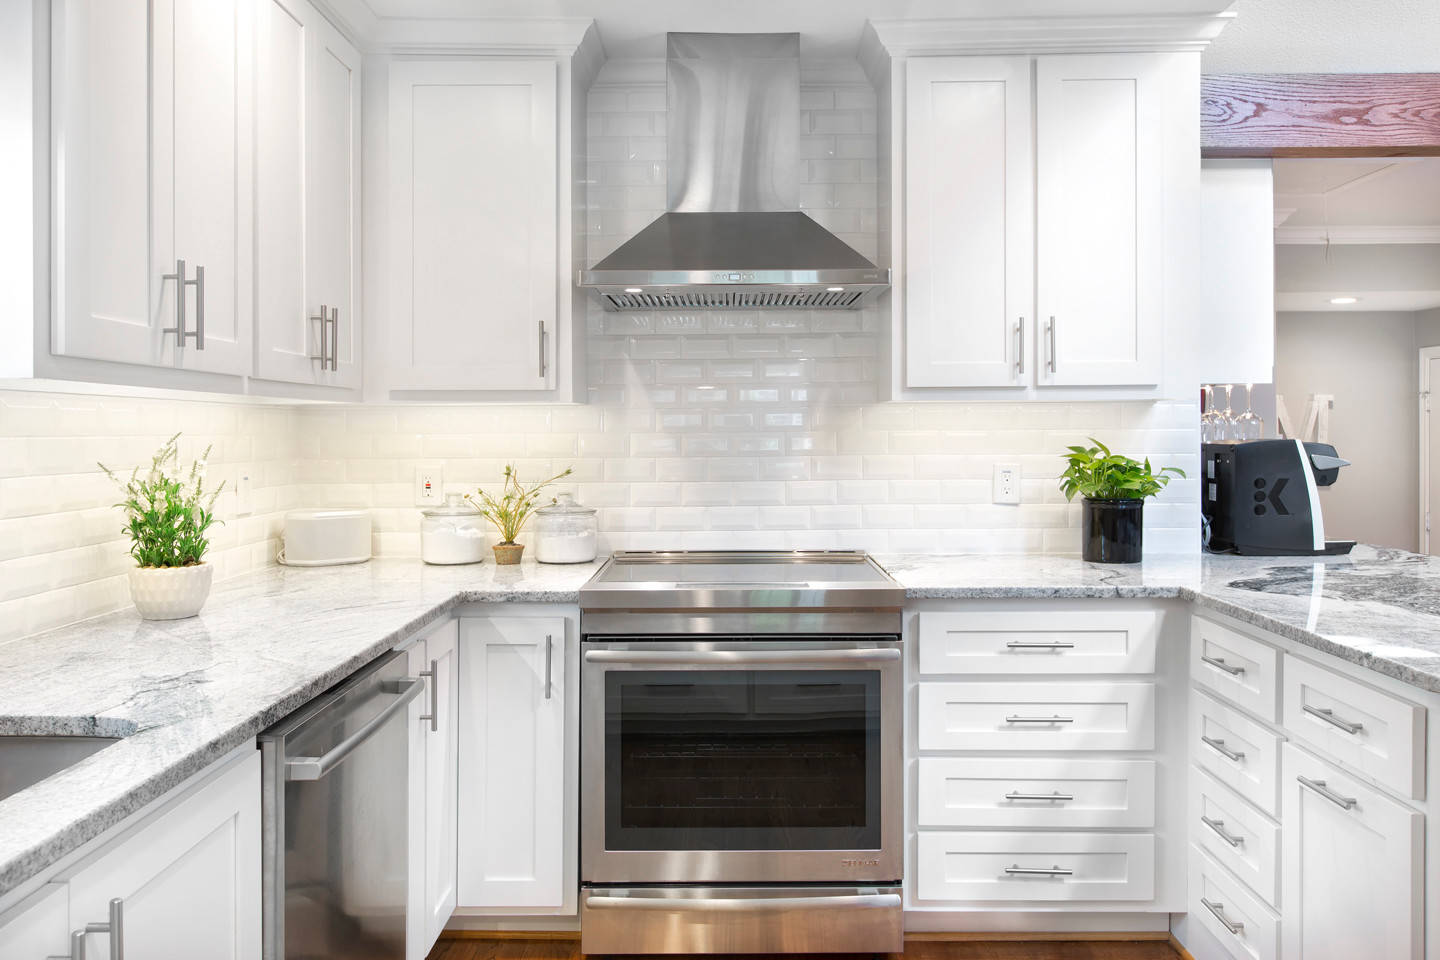 75 Beautiful White Kitchen With Granite Countertops Pictures Ideas November 2020 Houzz